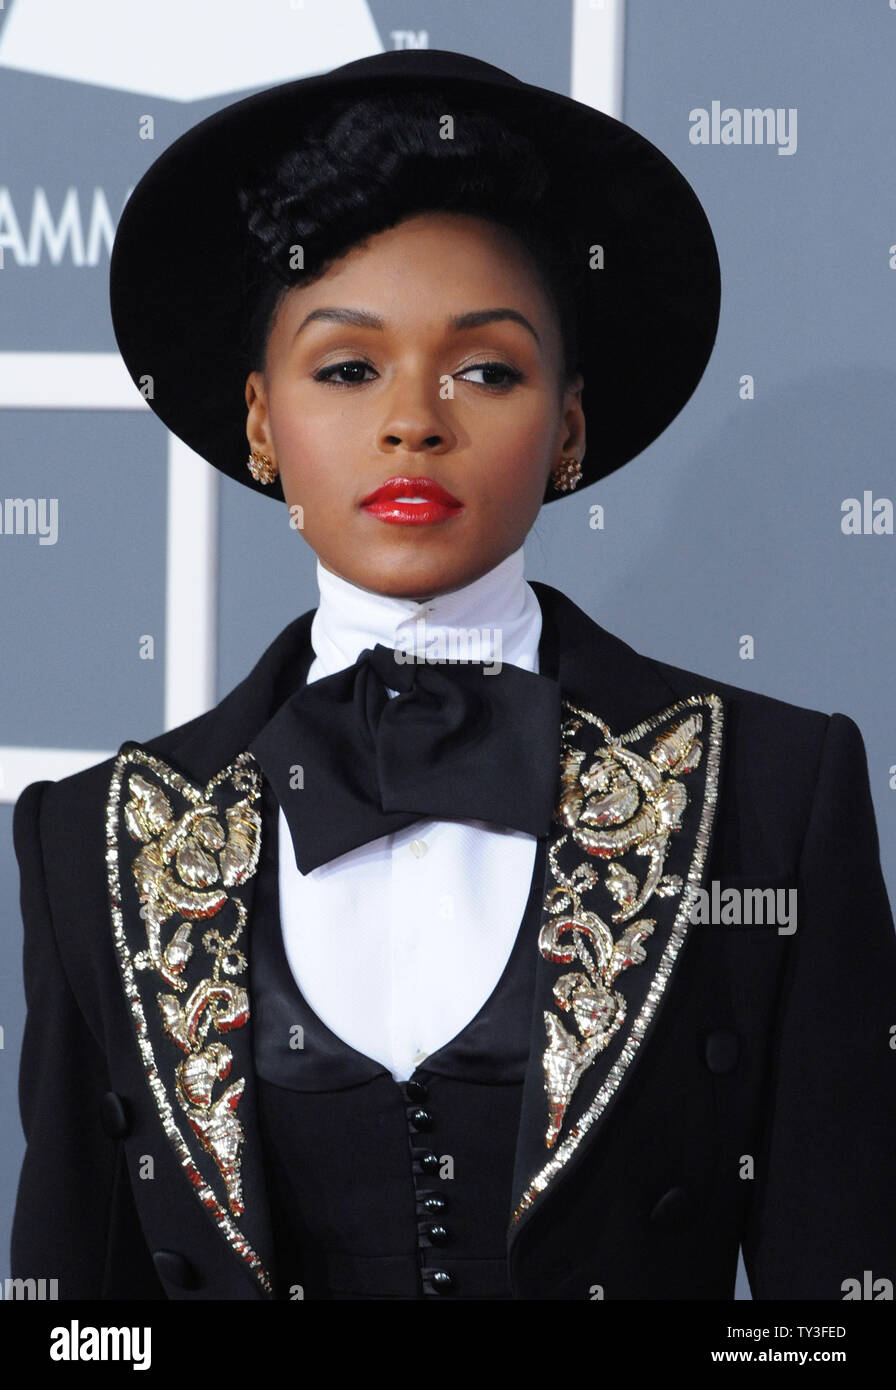 3ea288519c8 Janelle Monae arrives at the 55th annual Grammy Awards at Staples Center in Los  Angeles on February 10, 2013. UPI/Jim Ruymen